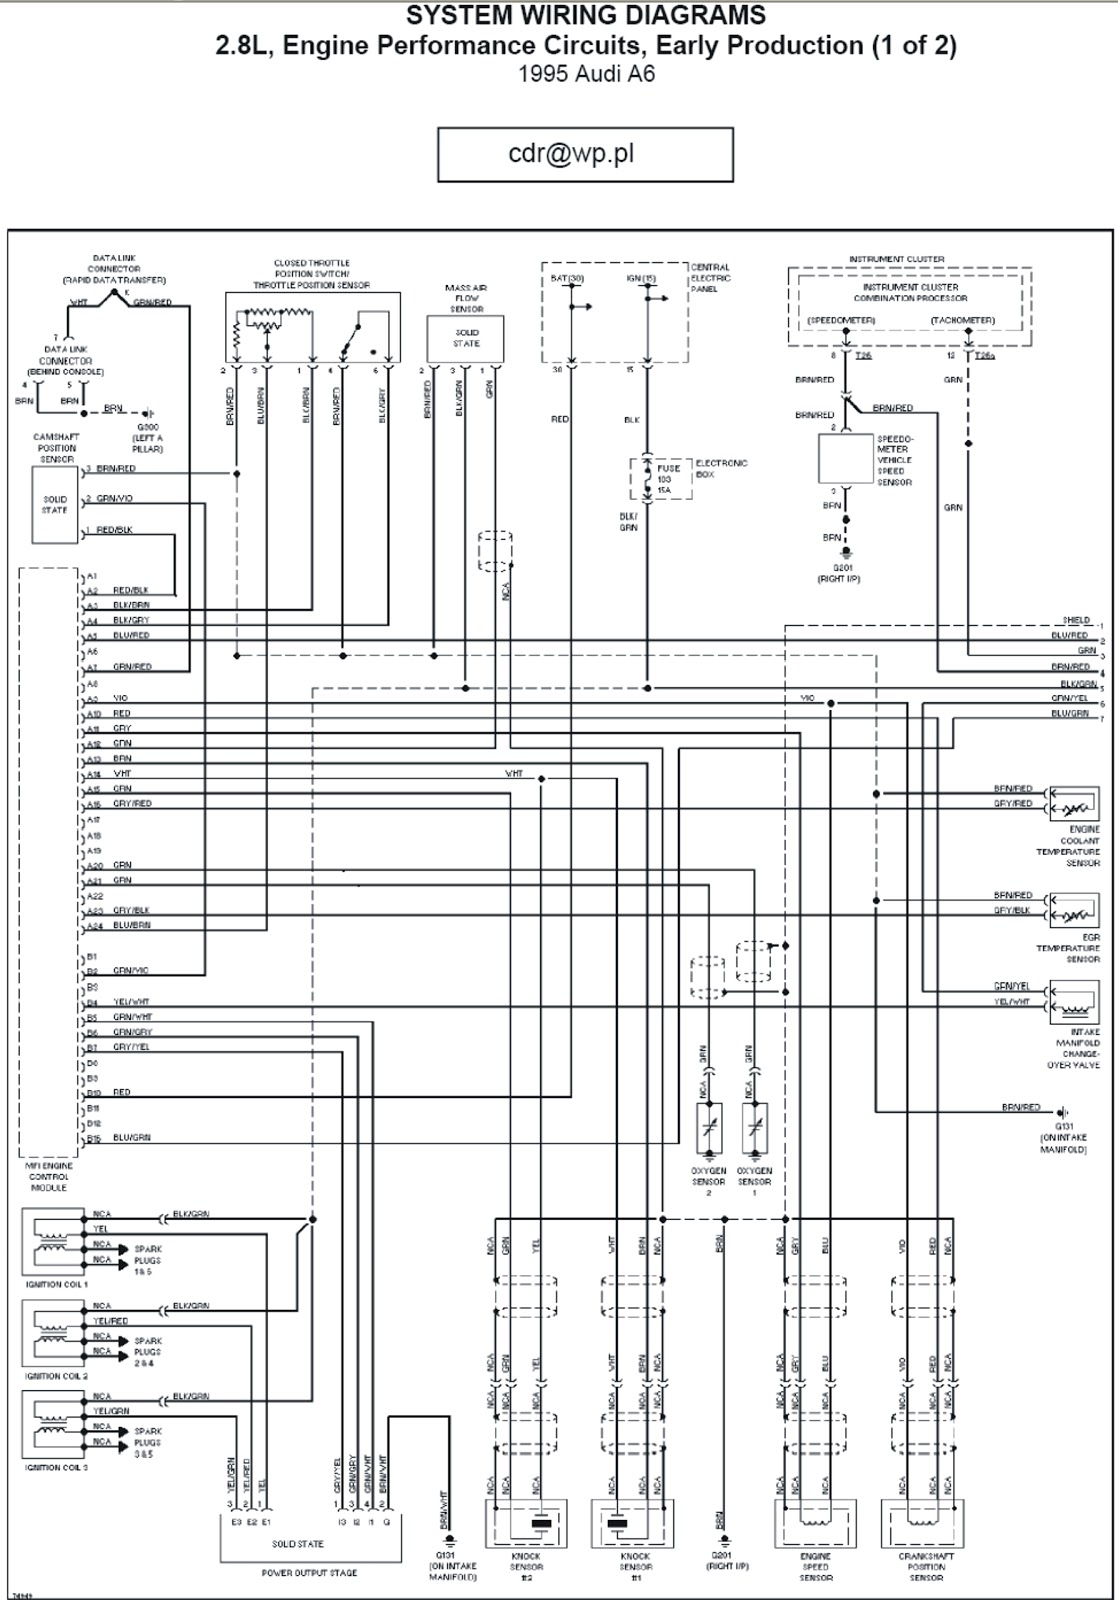 wiring diagram for audi a6 power window motor wiring diagram for audi a6 #1